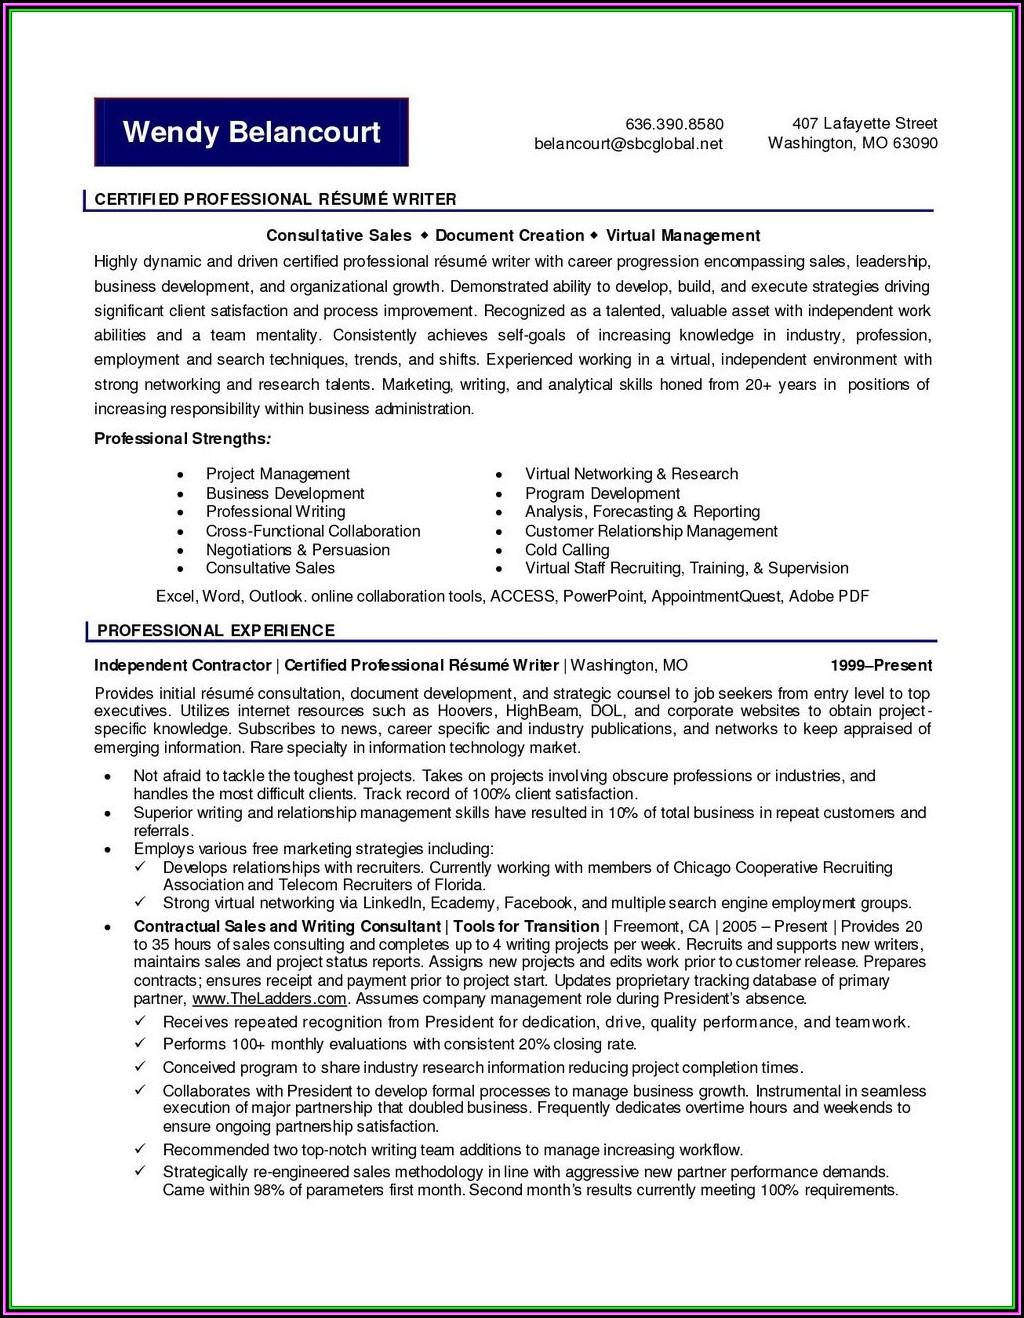 Professional Resume Writers In Monmouth County Nj